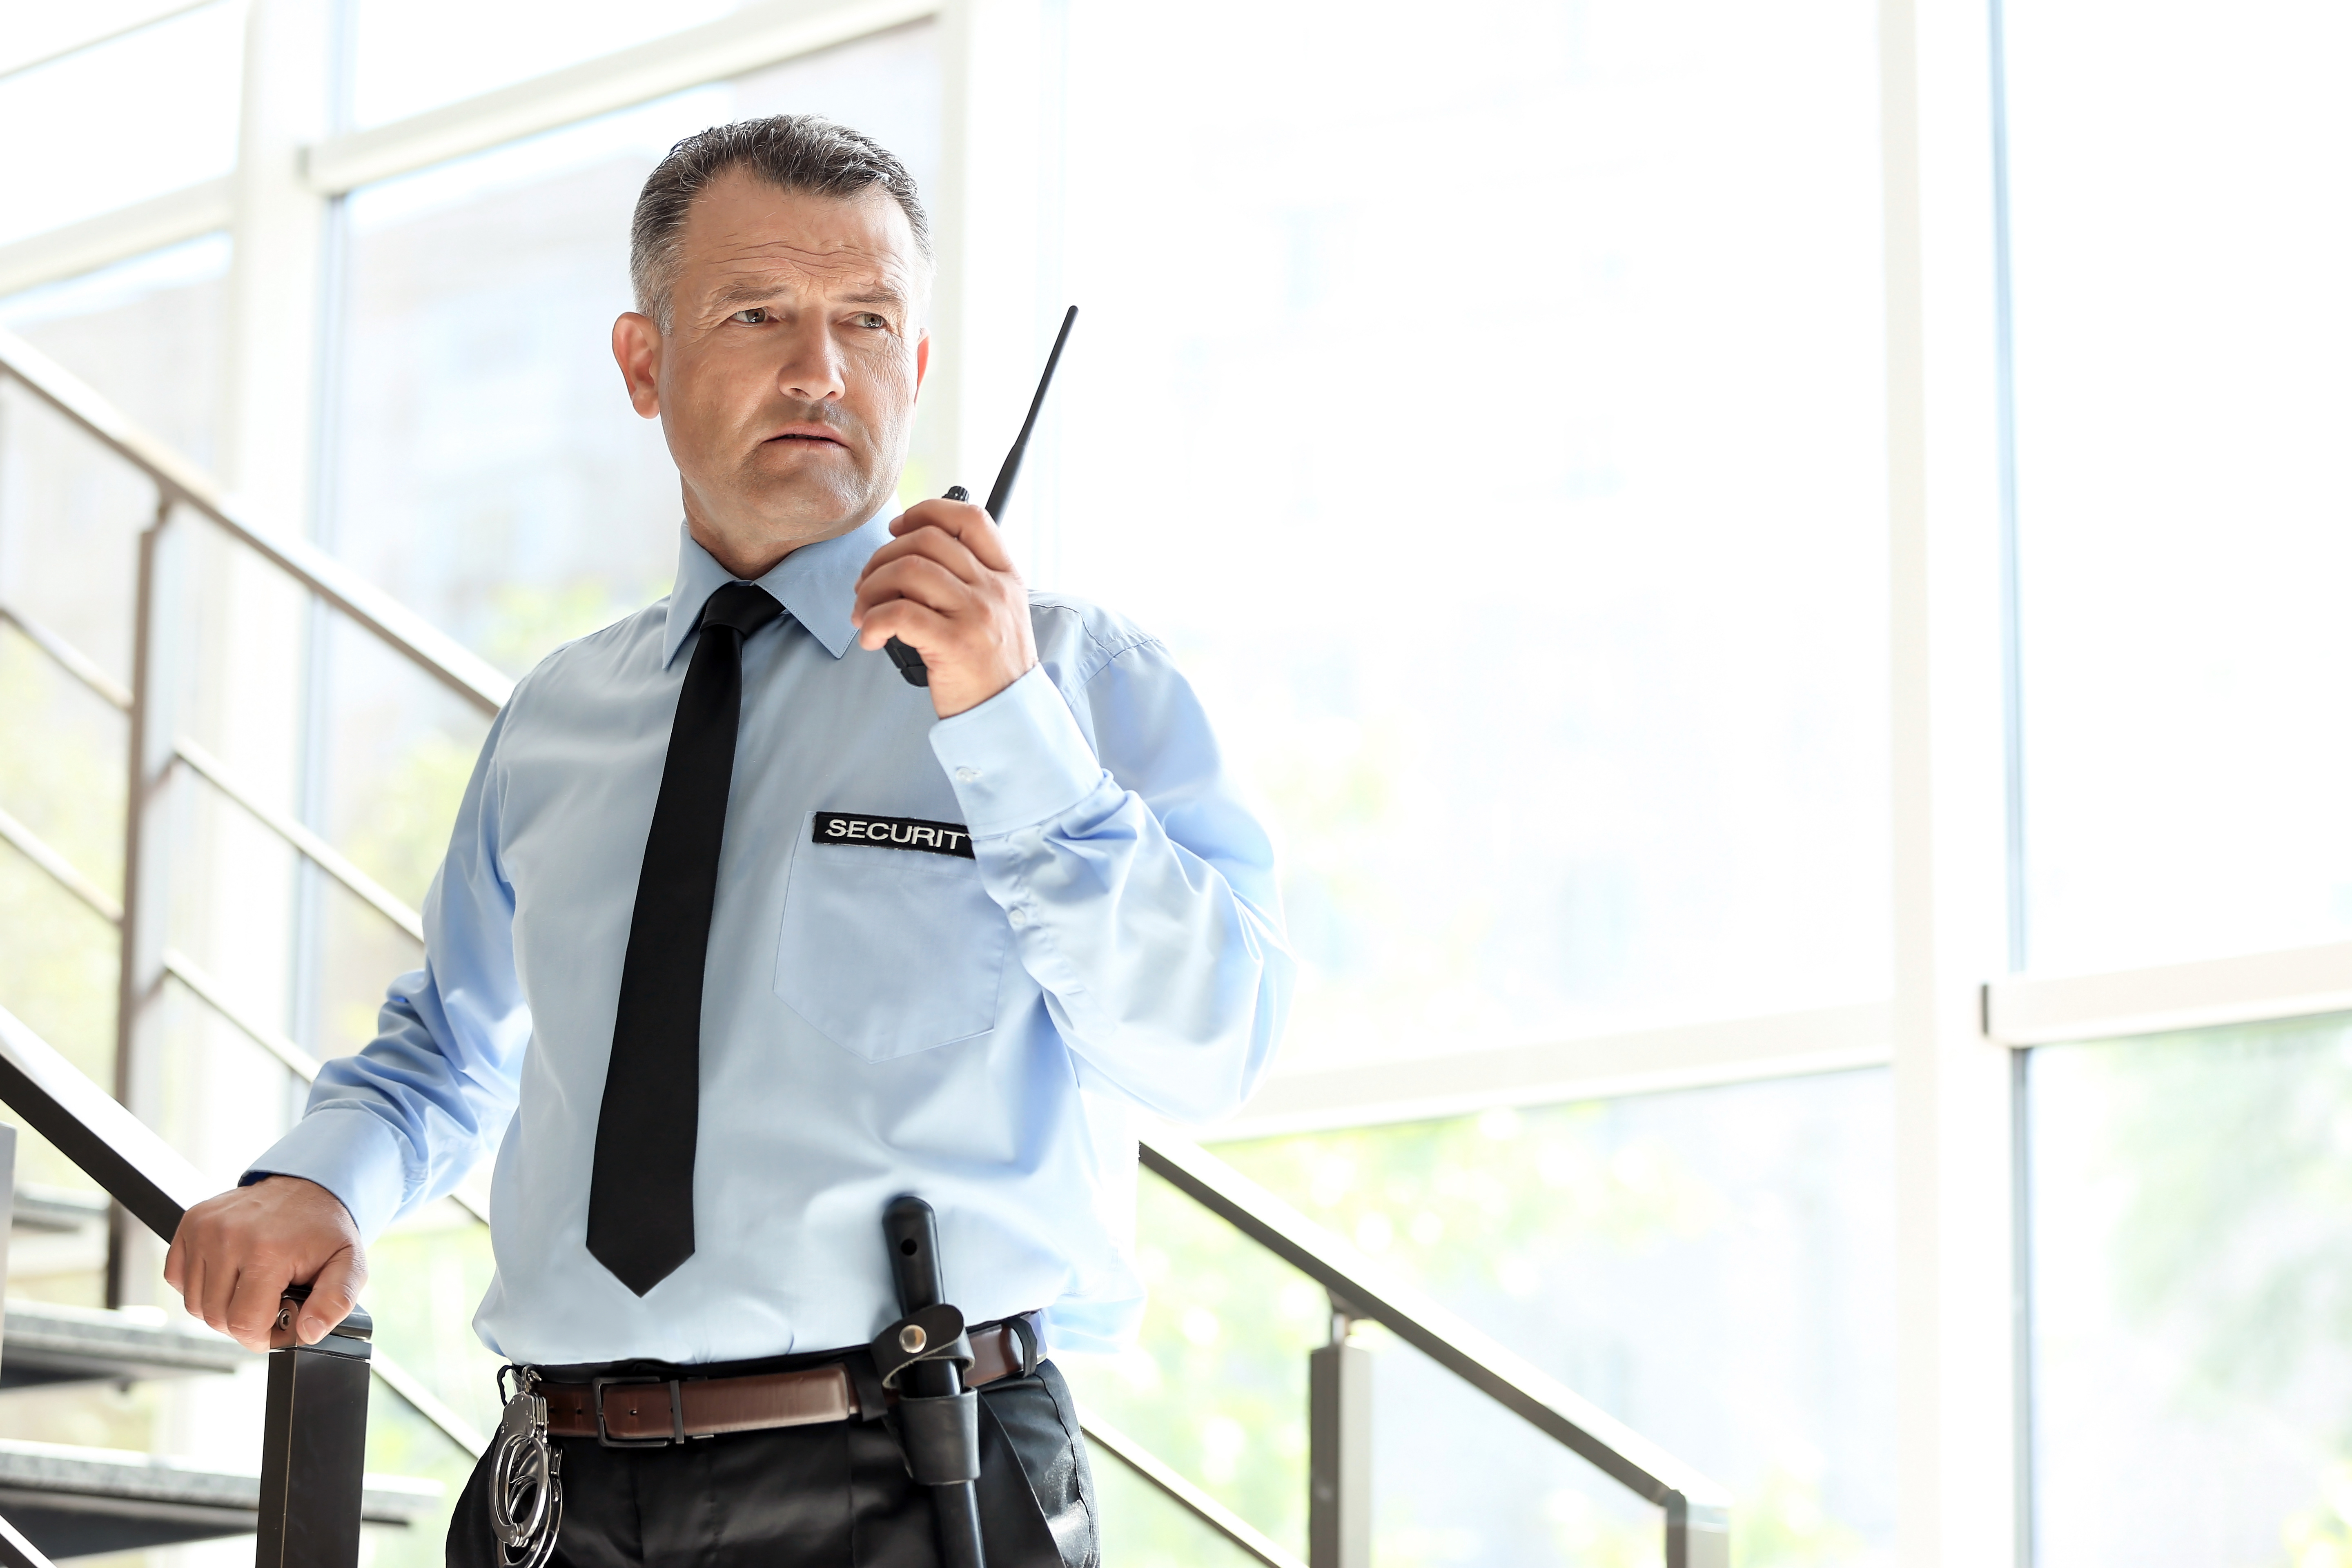 Stratton Security Top Provider of Guard and Patrol Services in the Dallas Area